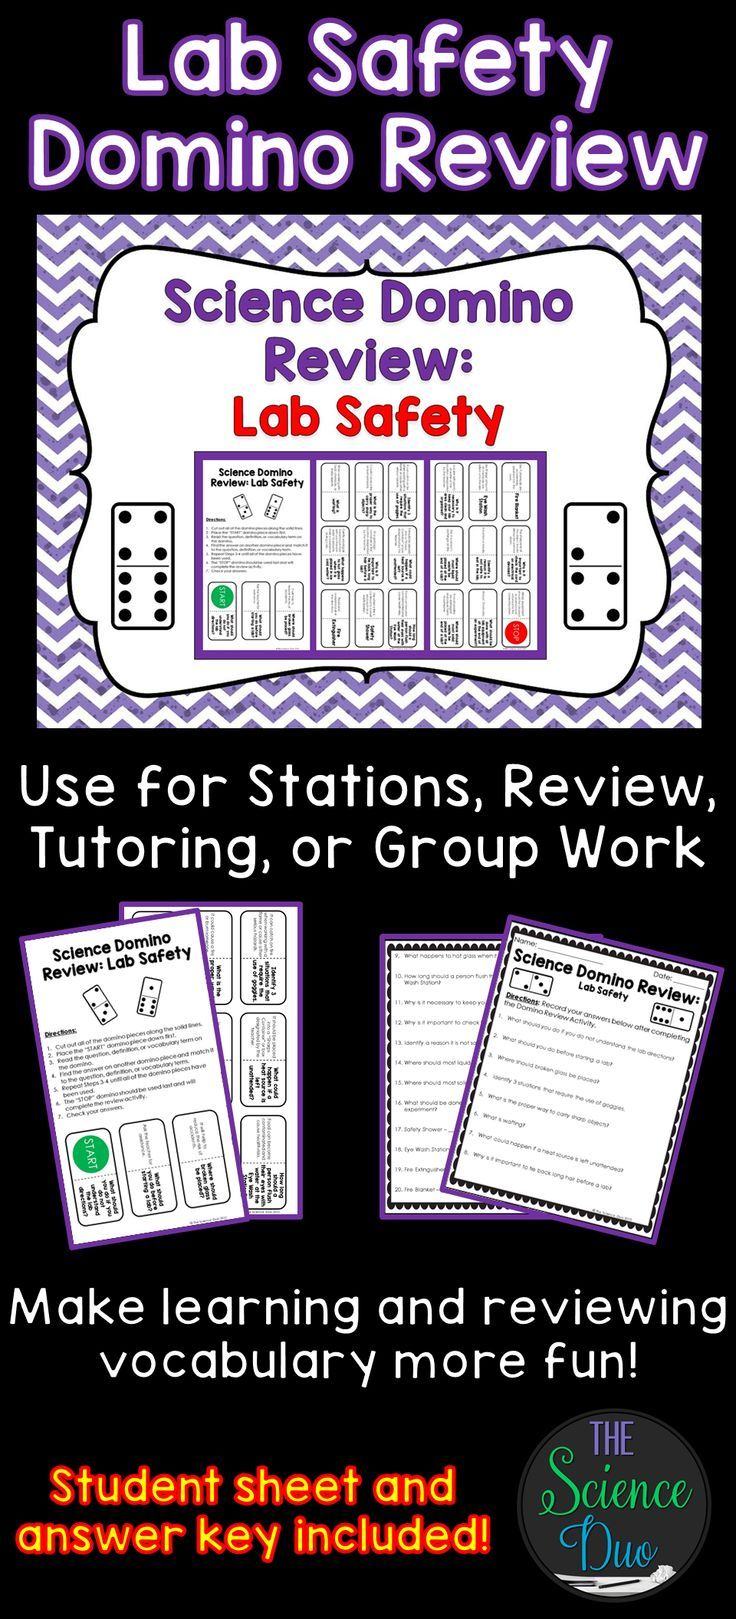 Lab Safety - Science Domino Review Activity   Rules and procedures ...